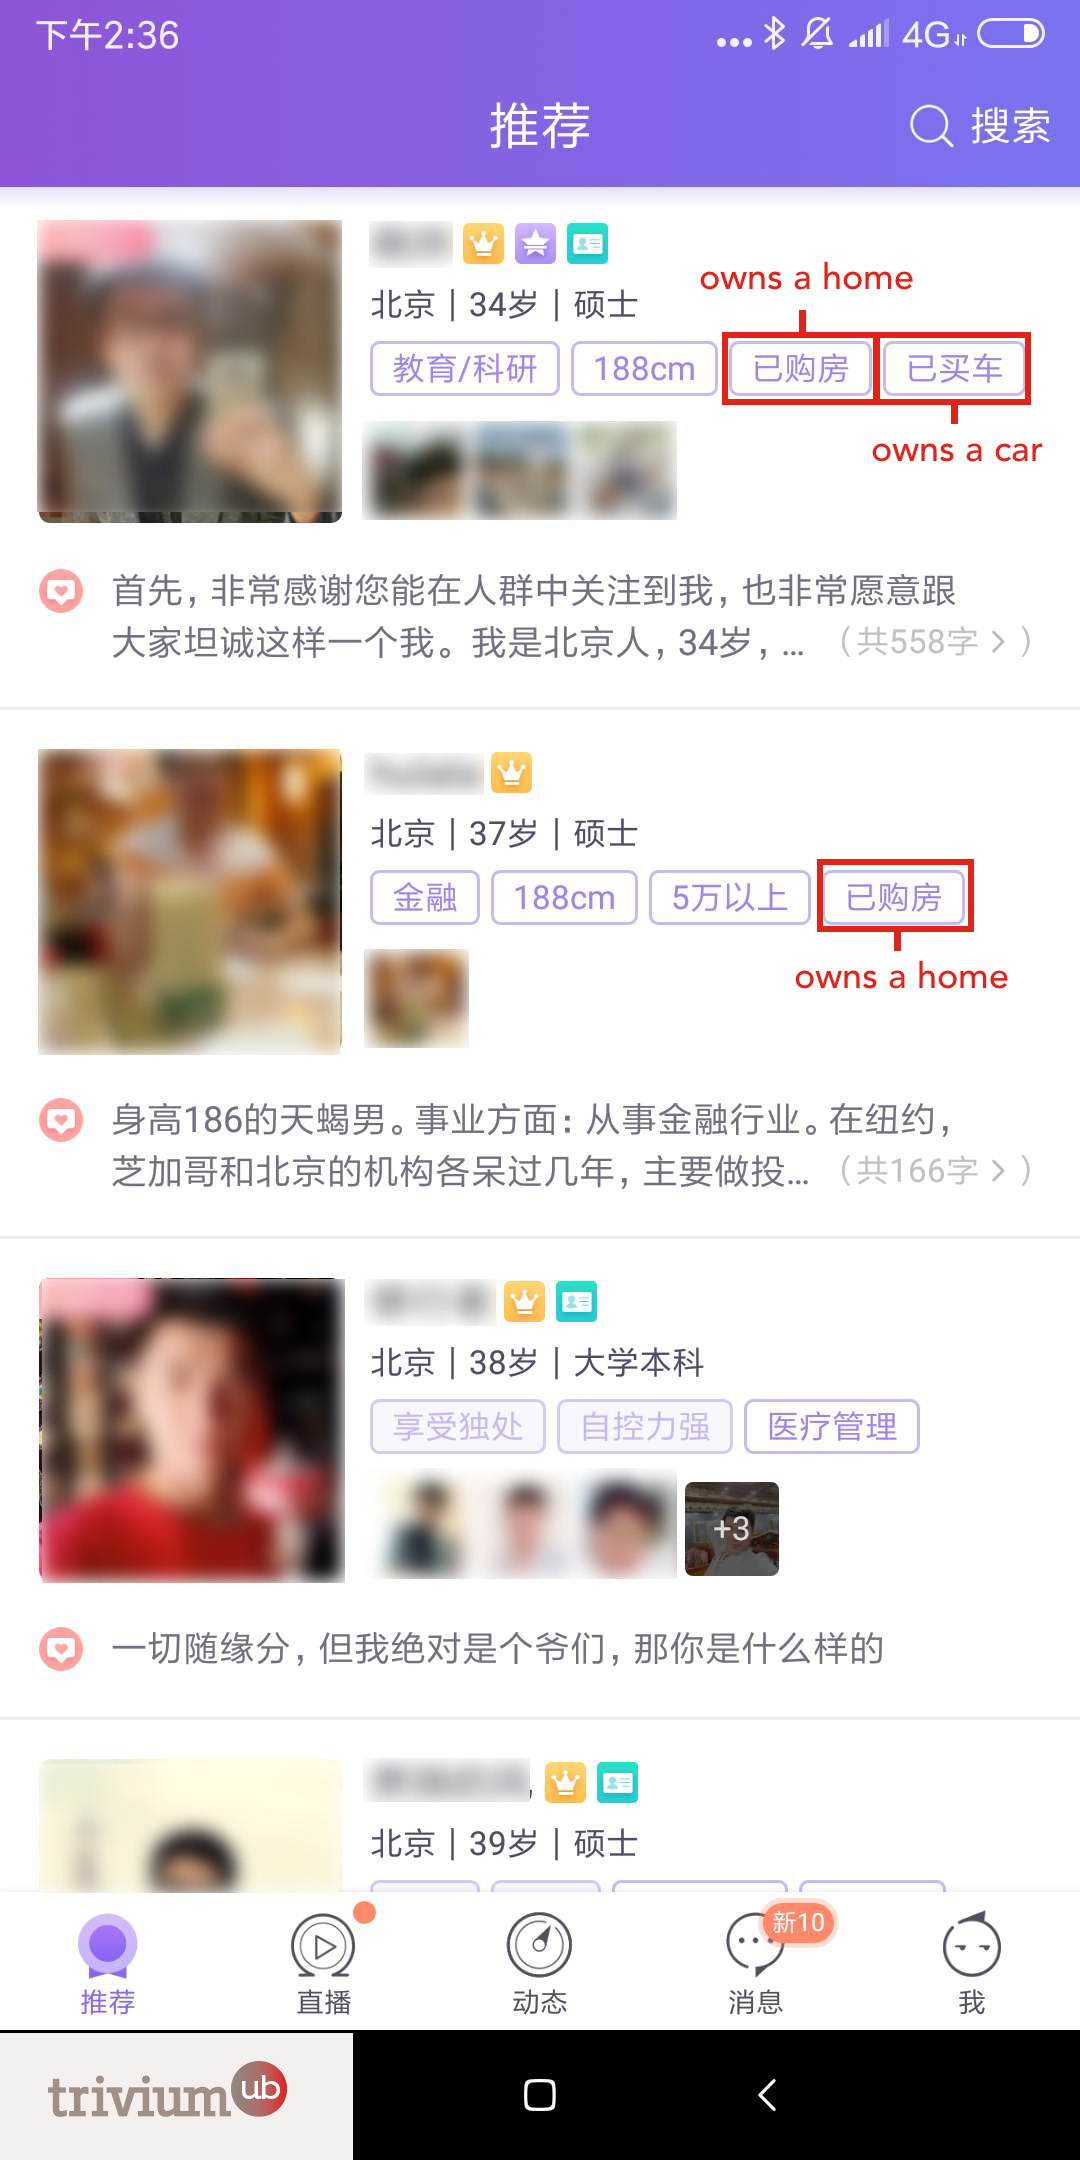 China Market Research User Behavior: Village Youth